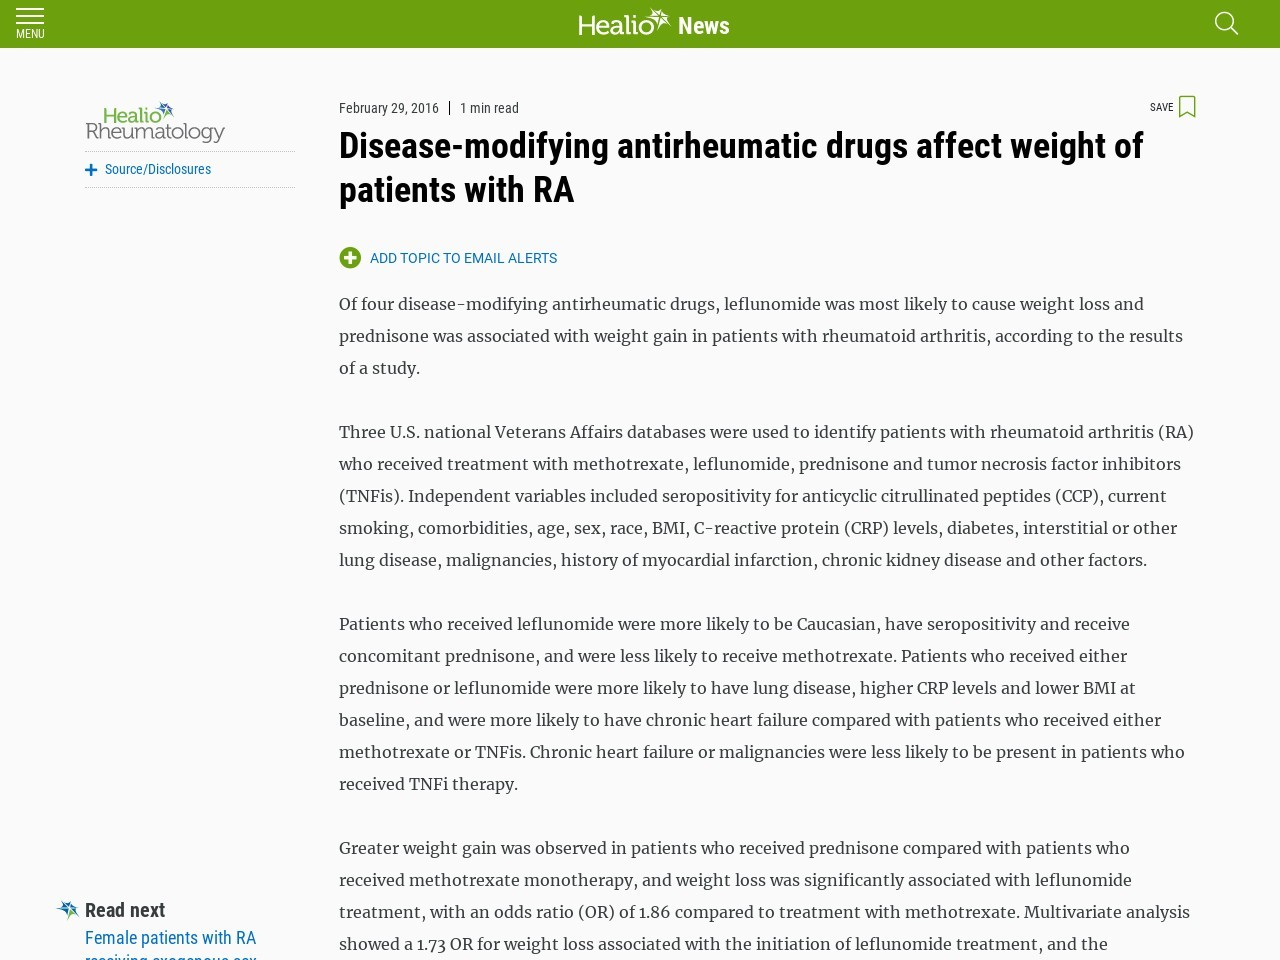 Disease-modifying antirheumatic drugs affect weight of patients with RA